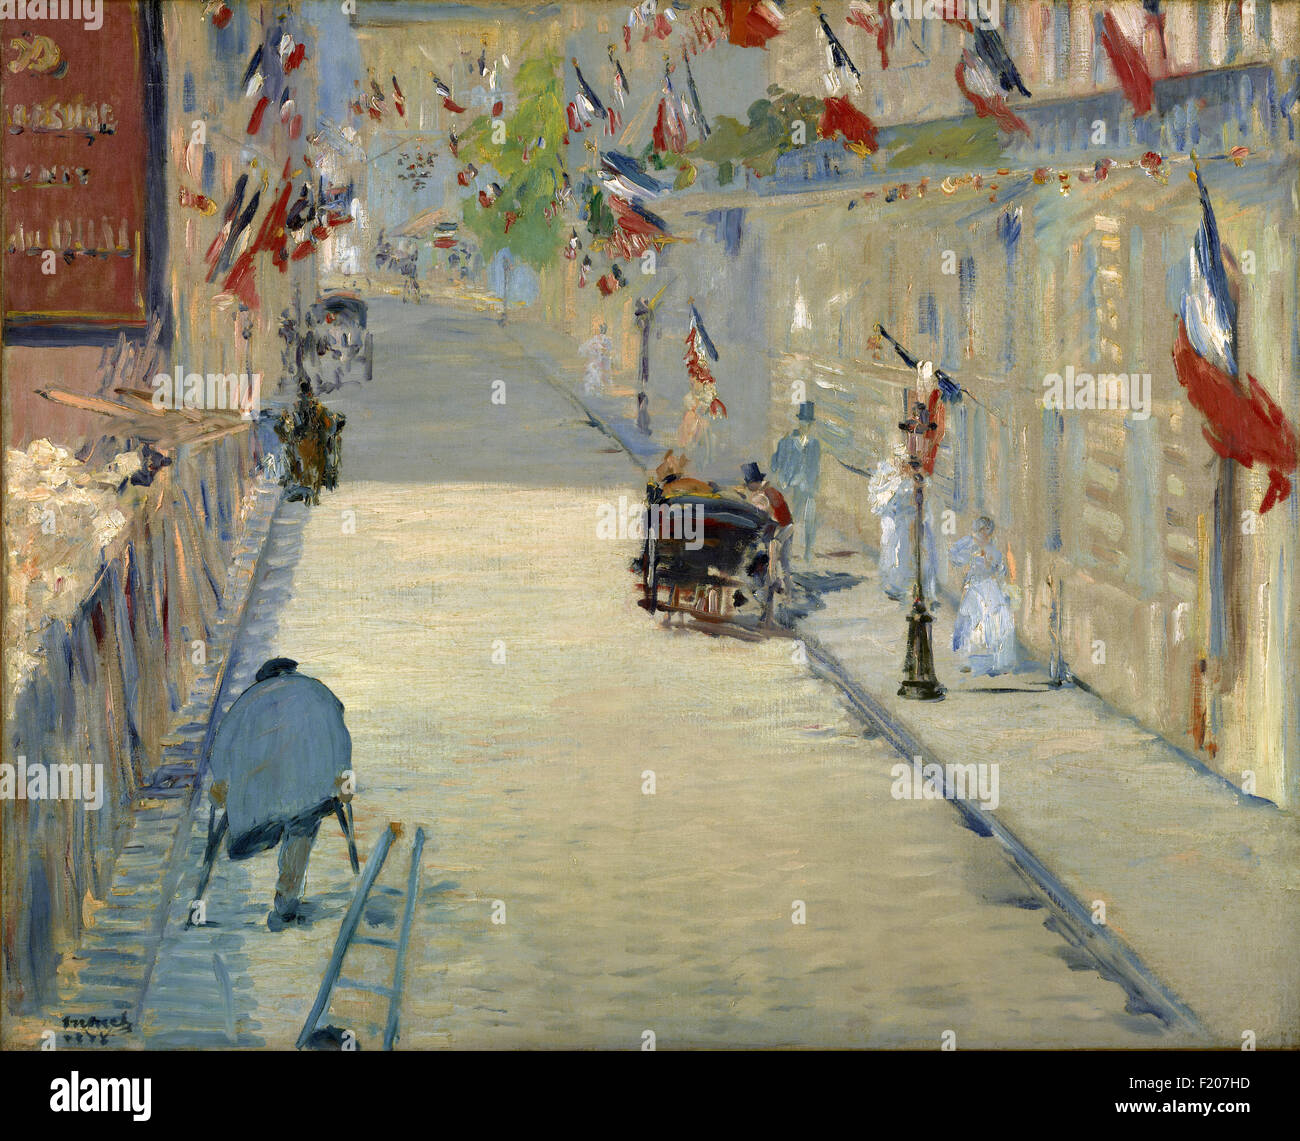 Edouard Manet - The Rue Mosnier with Flags - Stock Image